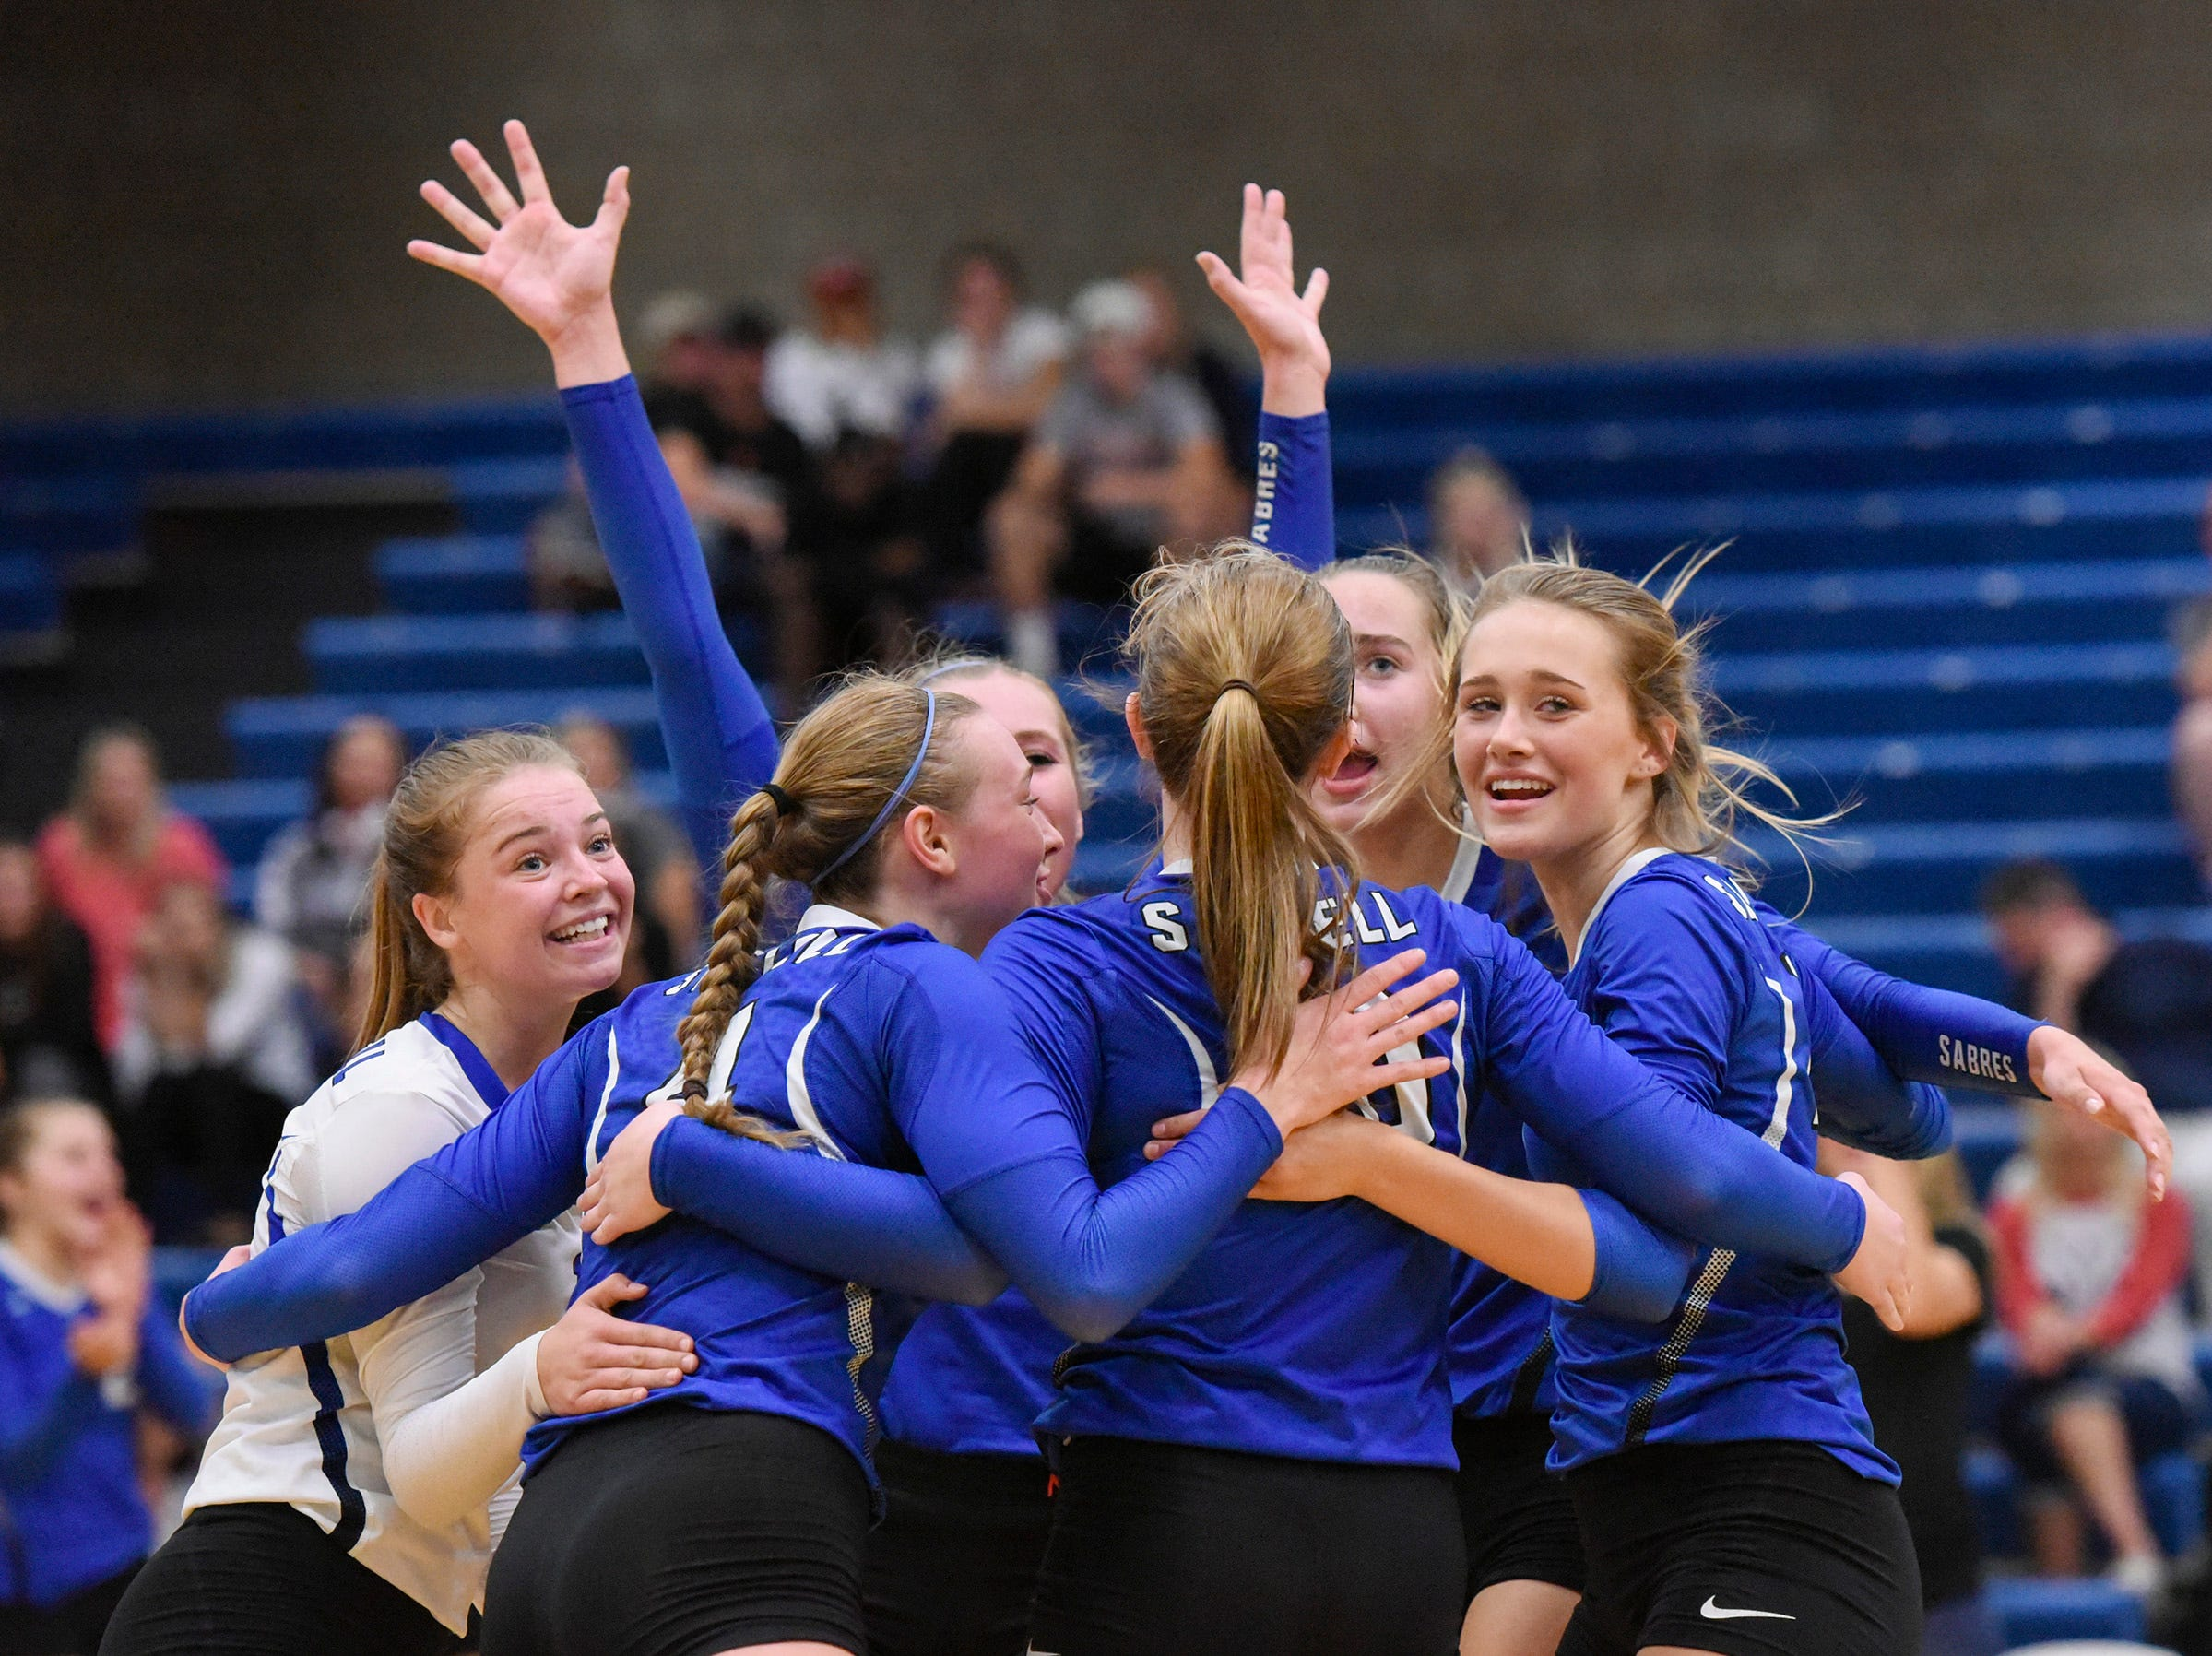 Sartell players celebrate a point against  Tech during the second game Tuesday, Sept. 11, in Sartell